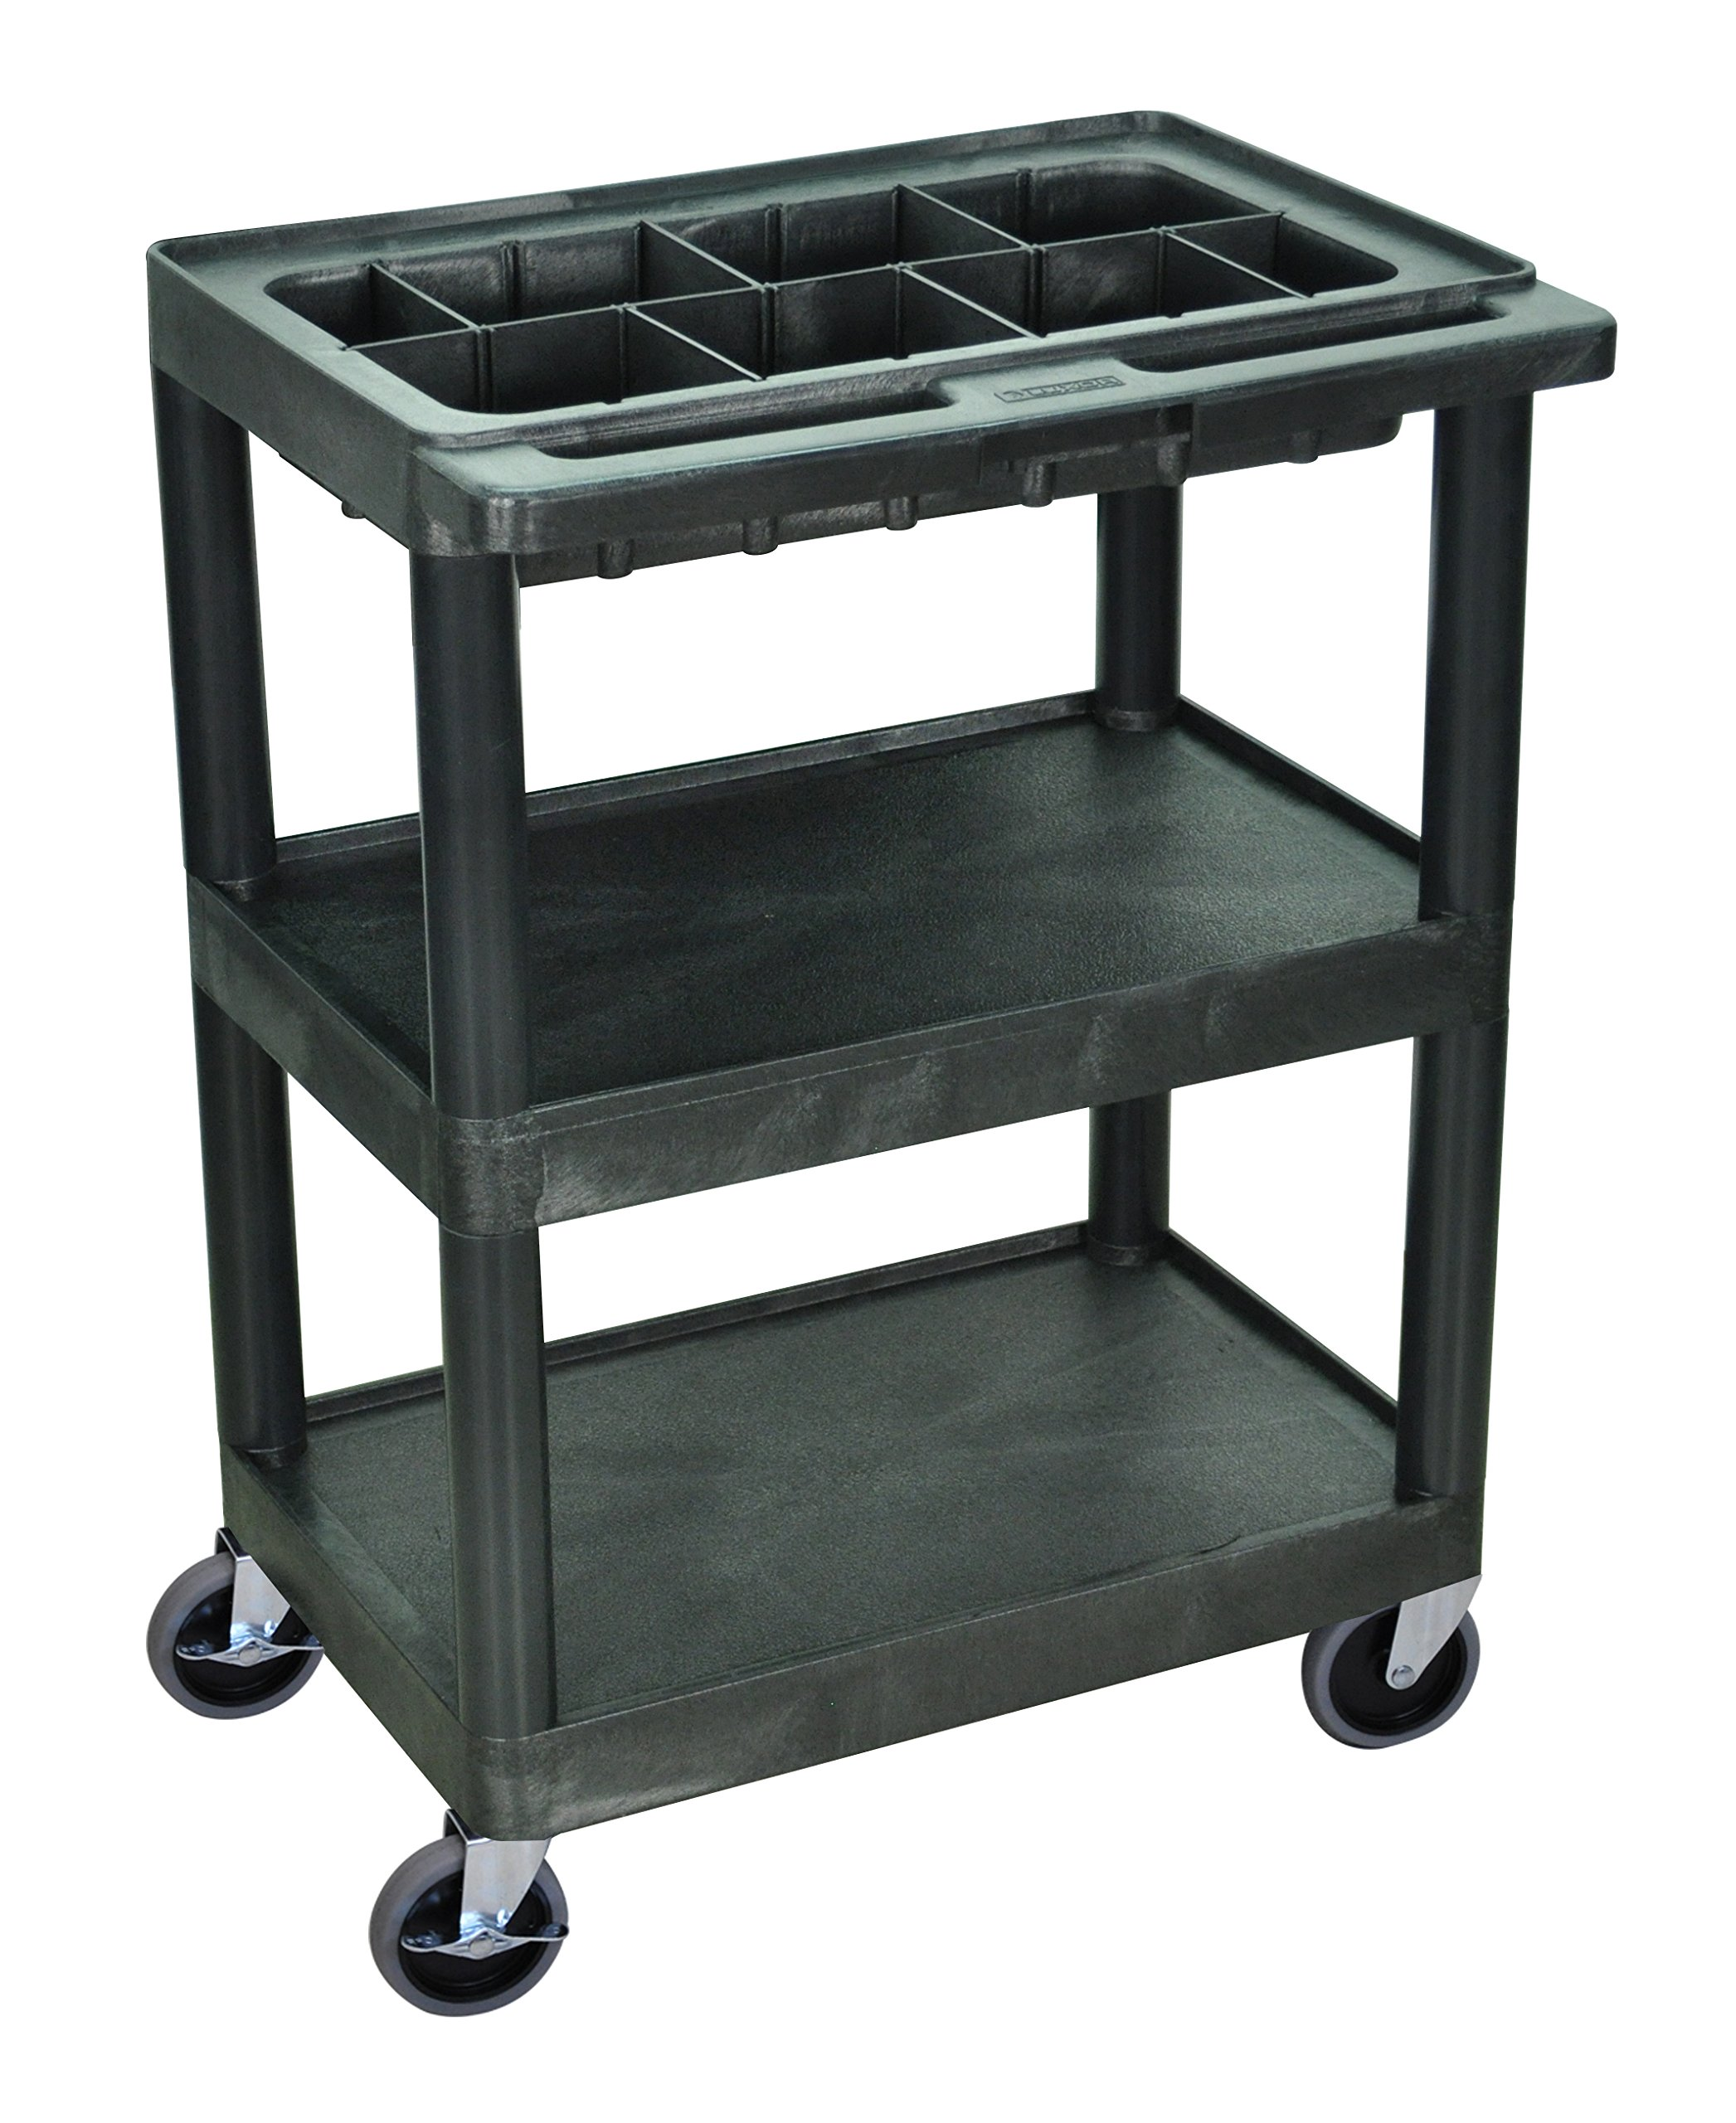 LUXOR MTC25D/N-B Utility Tool Cart with Dividers, 3 Shelves, Black